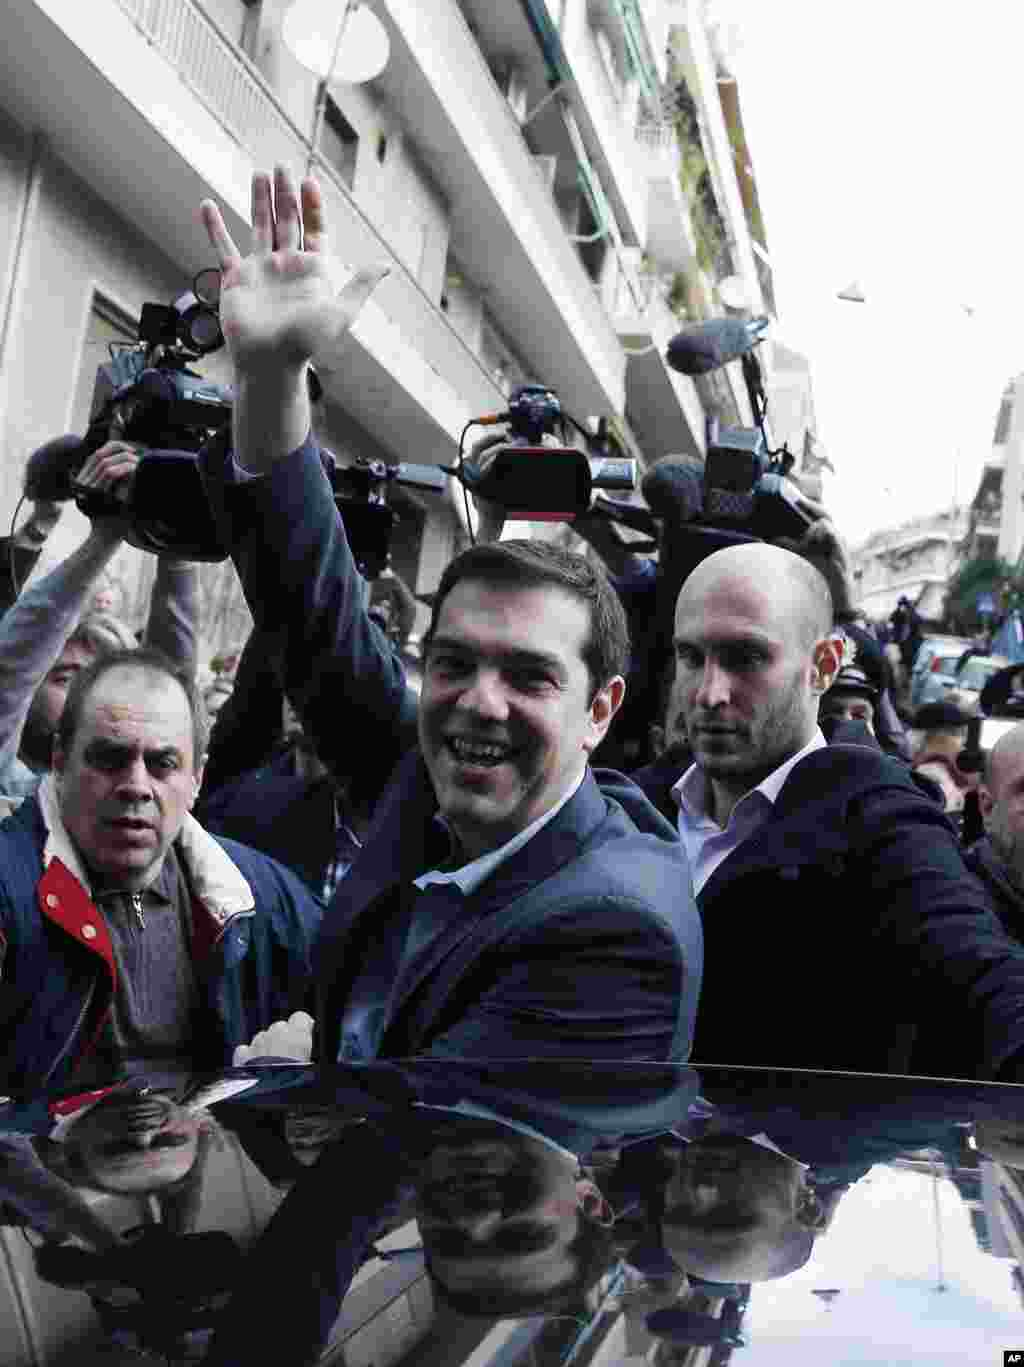 Alexis Tsipras, leader of Greece's Syriza left-wing main opposition, waves to his supporters after voting at a polling station in Athens, Jan. 25, 2015.